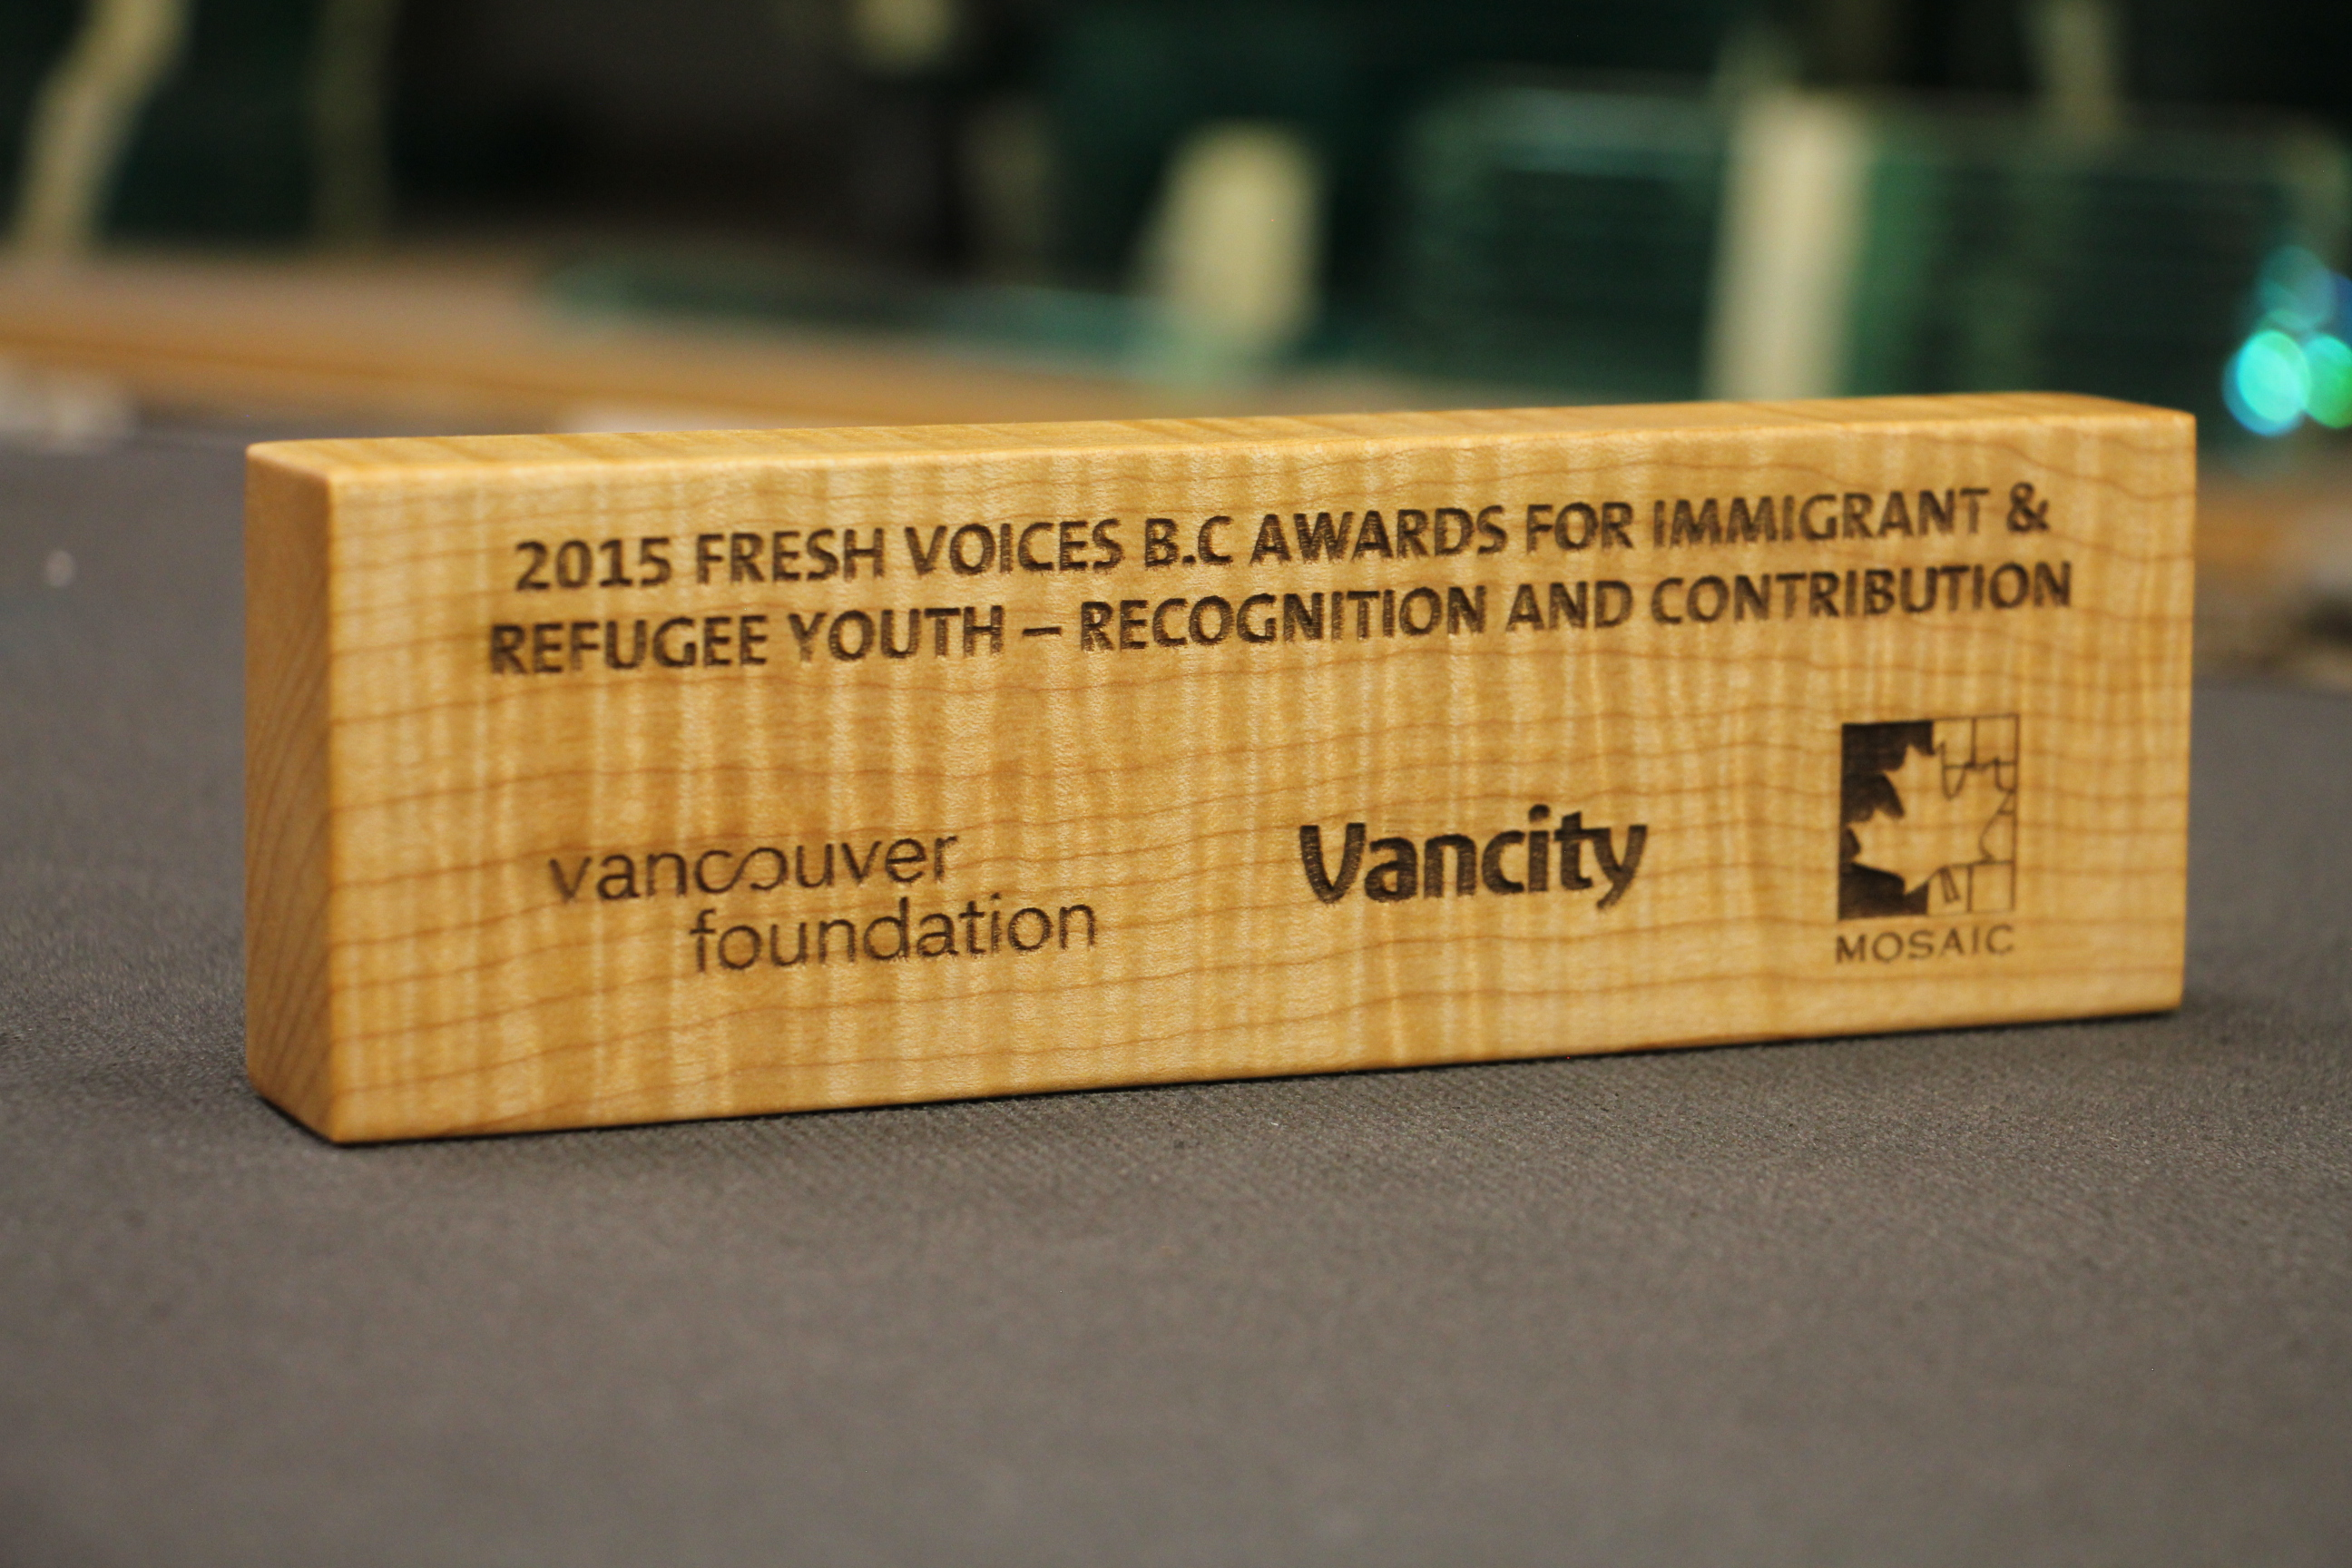 custom-award_sustainable_laser-engraved_salvaged-wood_corporate_recognition-award_north-america